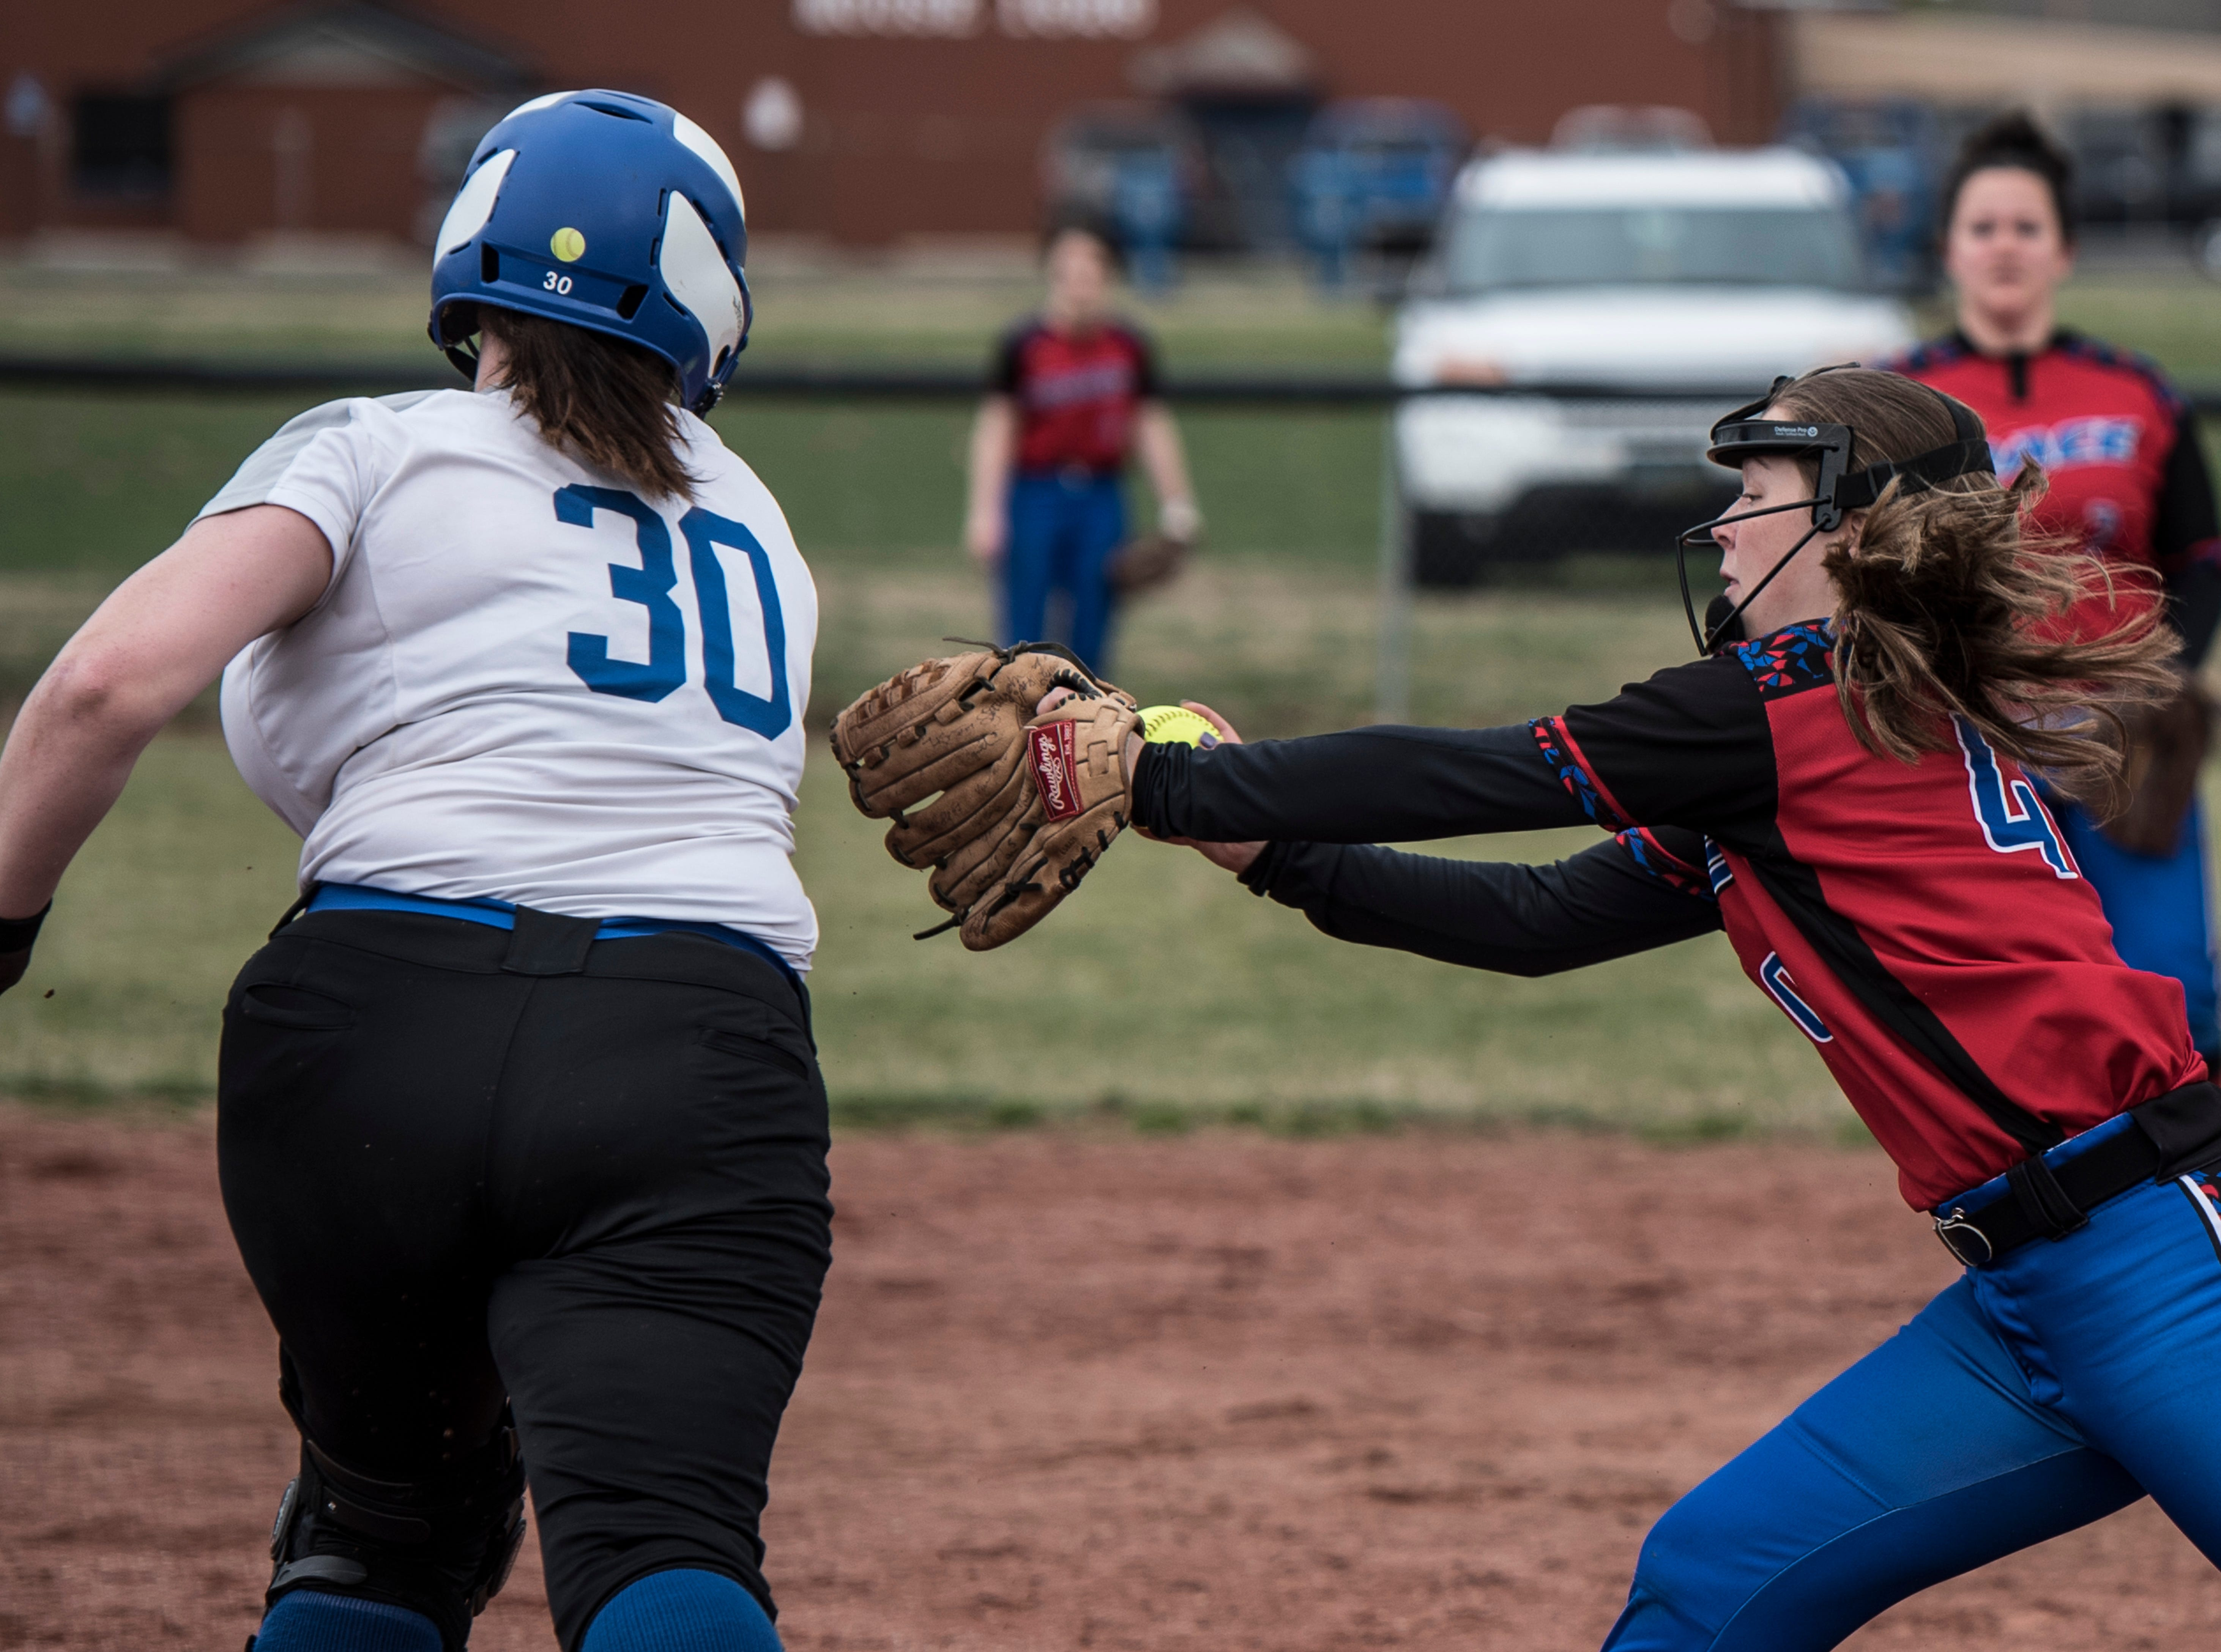 Zane Trace defeated Chillicothe 10-7 Saturday morning at Mt. Logan Elementary School during the first game of their double header. Chillicothe went on to win the second game 13-3.